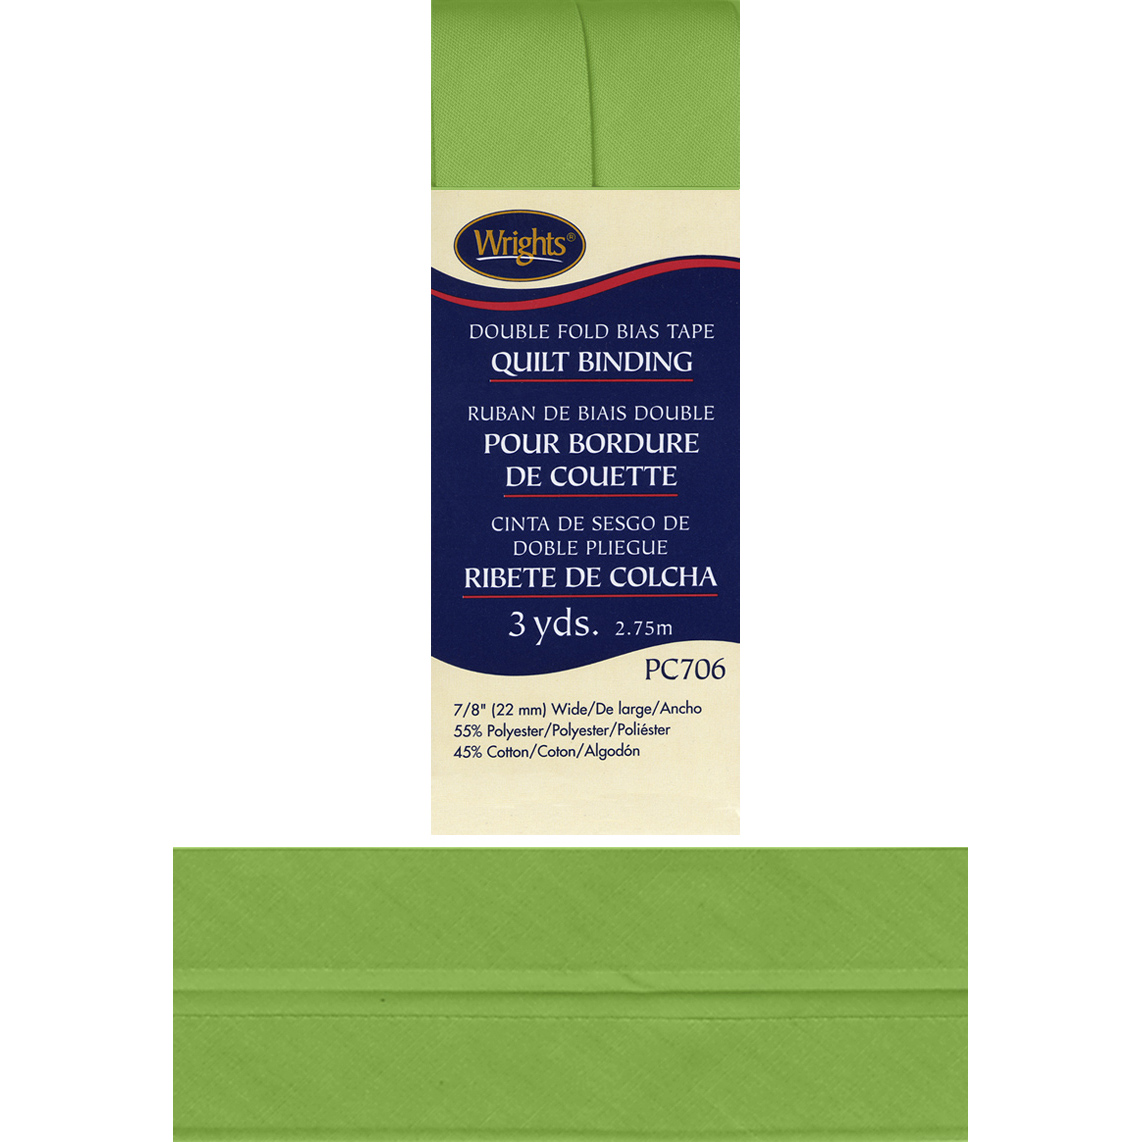 "Wrights 7/8"" Double Fold Quilt Binding, Green Glow"